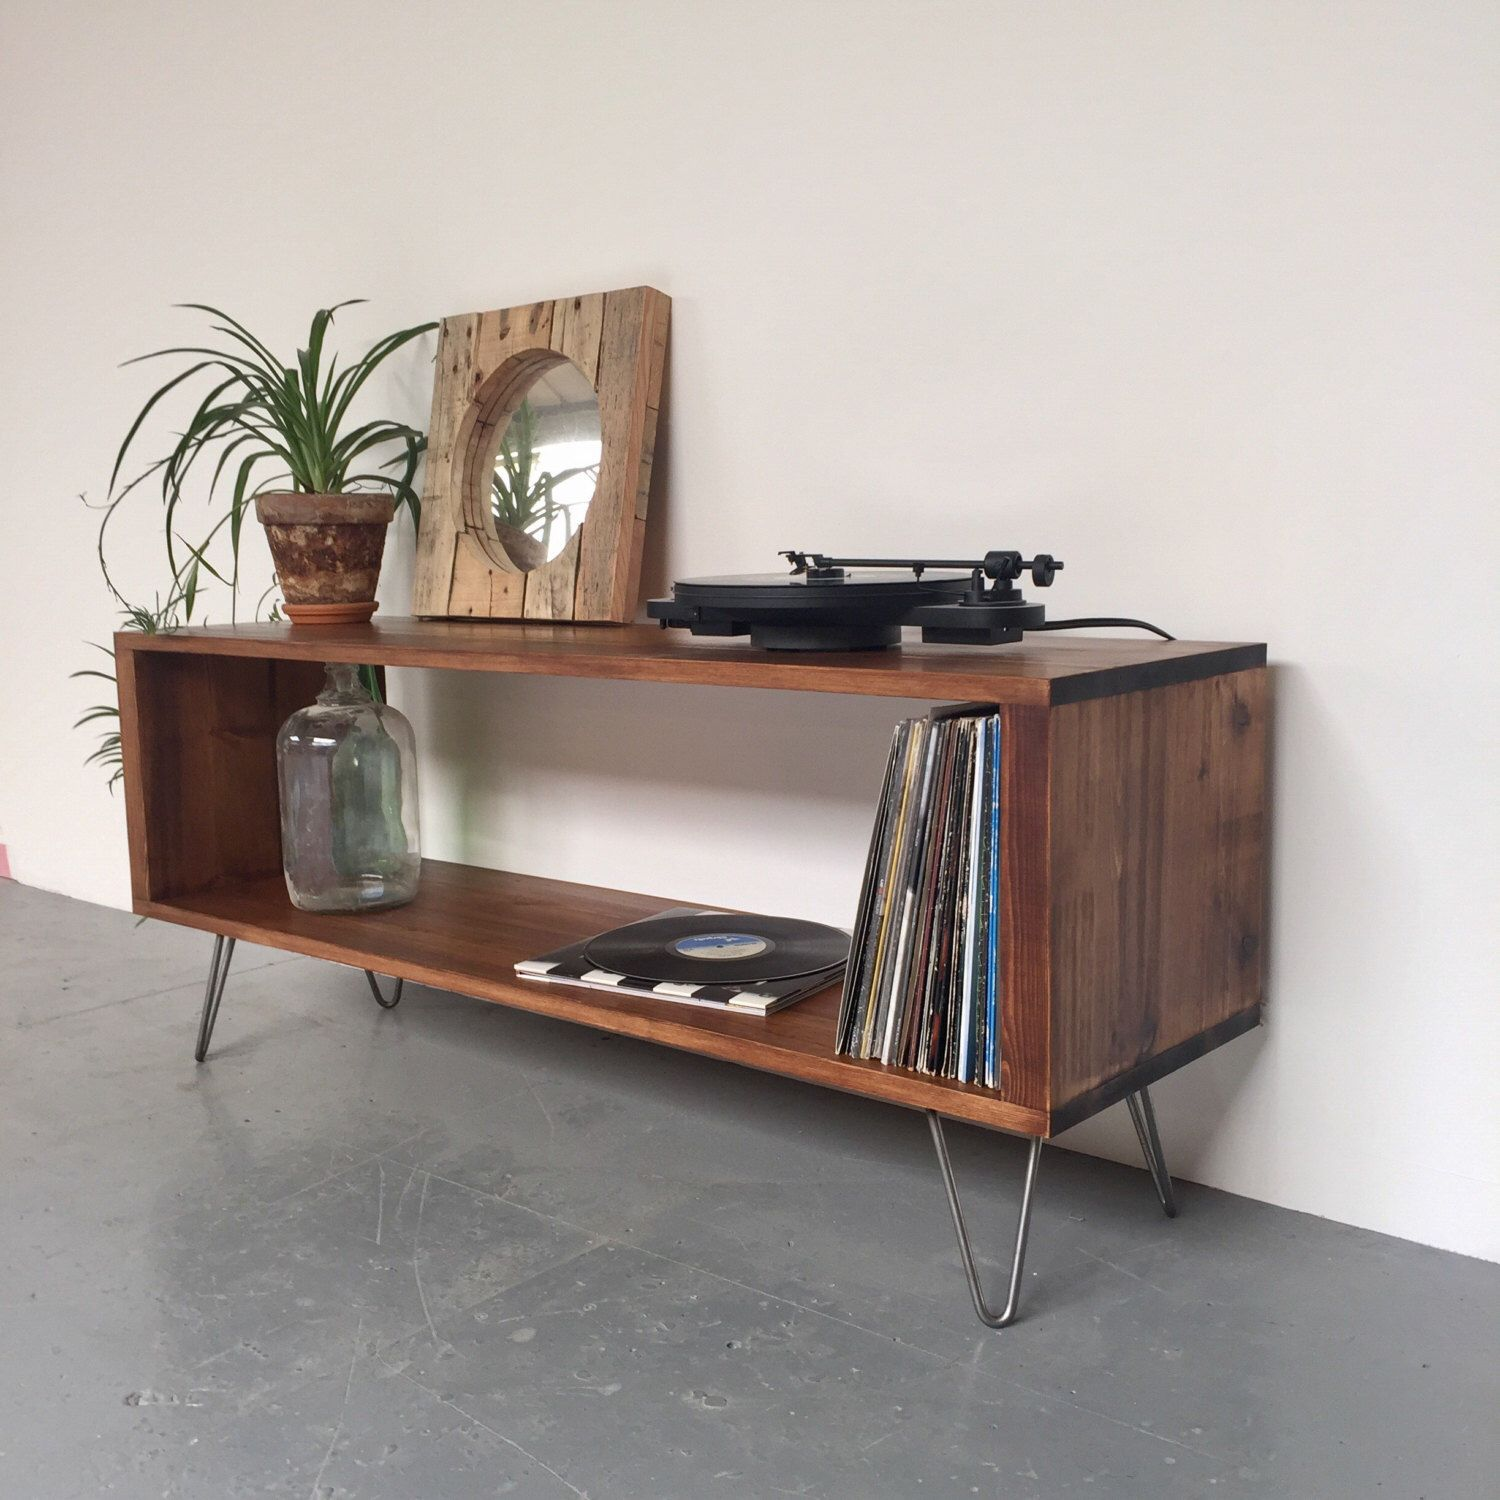 Design Record Player Cabinet stanton record player stand lp vinyl storage cabinet console coffee table on mid